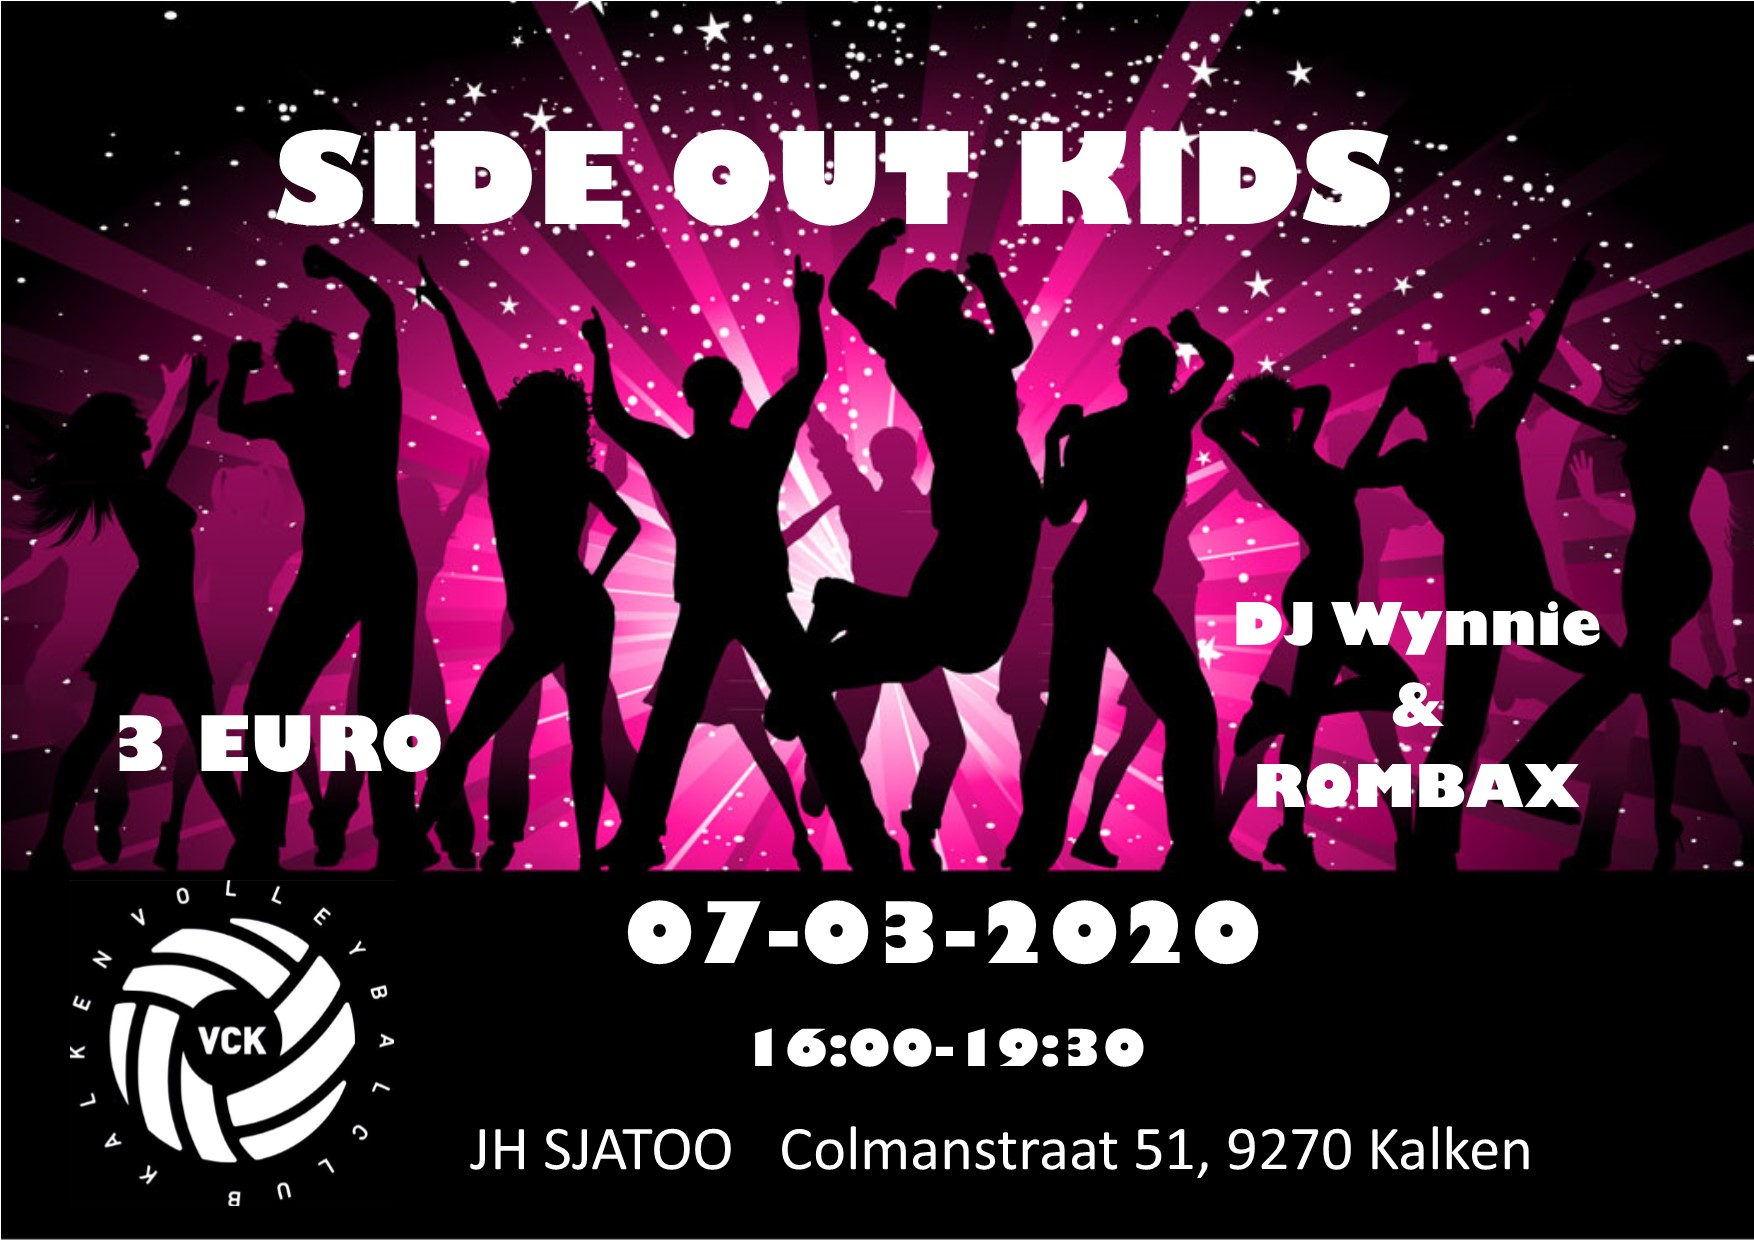 Side out kids - 7 maart 2020